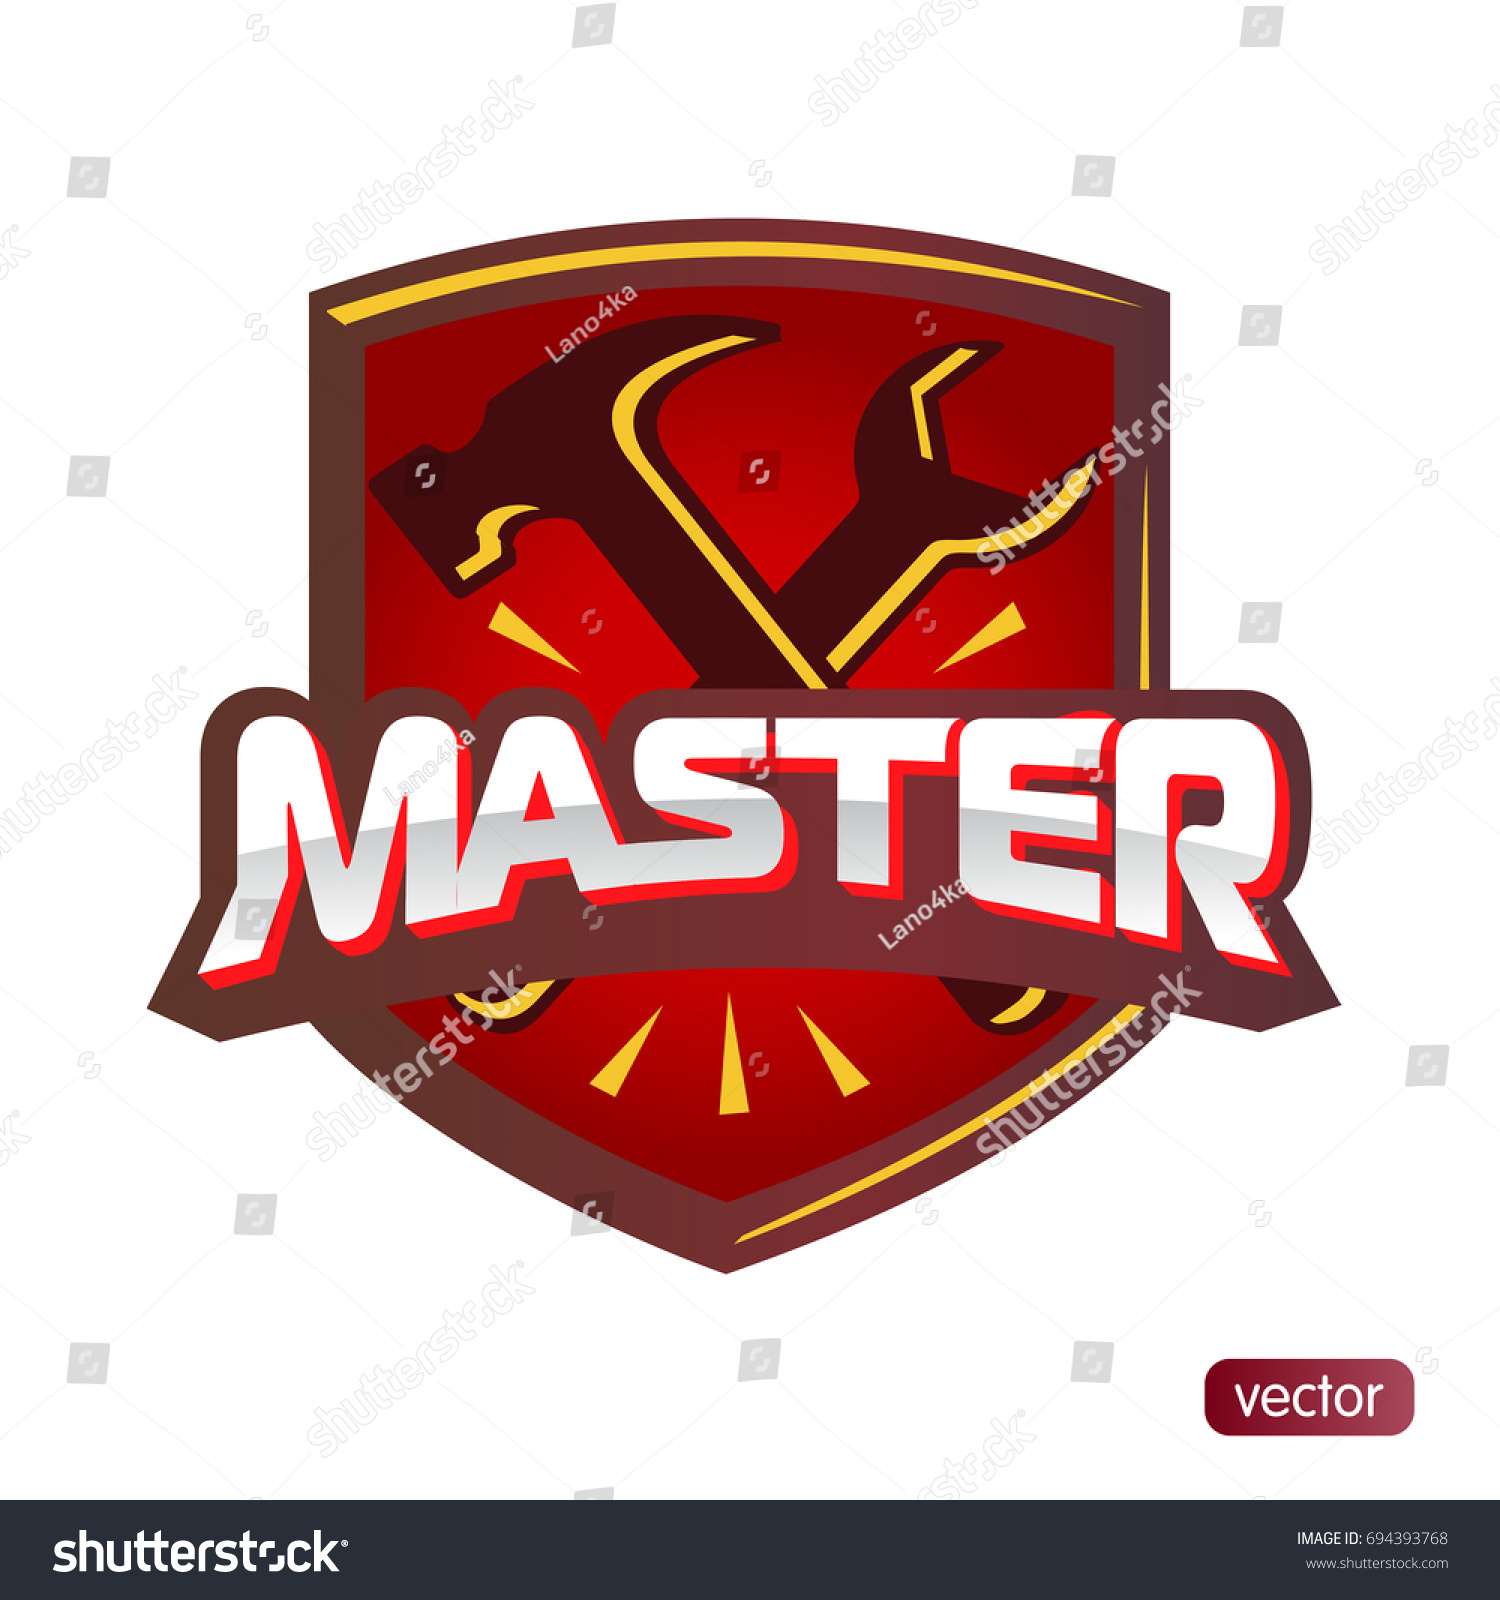 Logo master lettering brand symbol service stock vector 694393768 logo master lettering brand symbol service mark isolated on white background vector illustration biocorpaavc Image collections